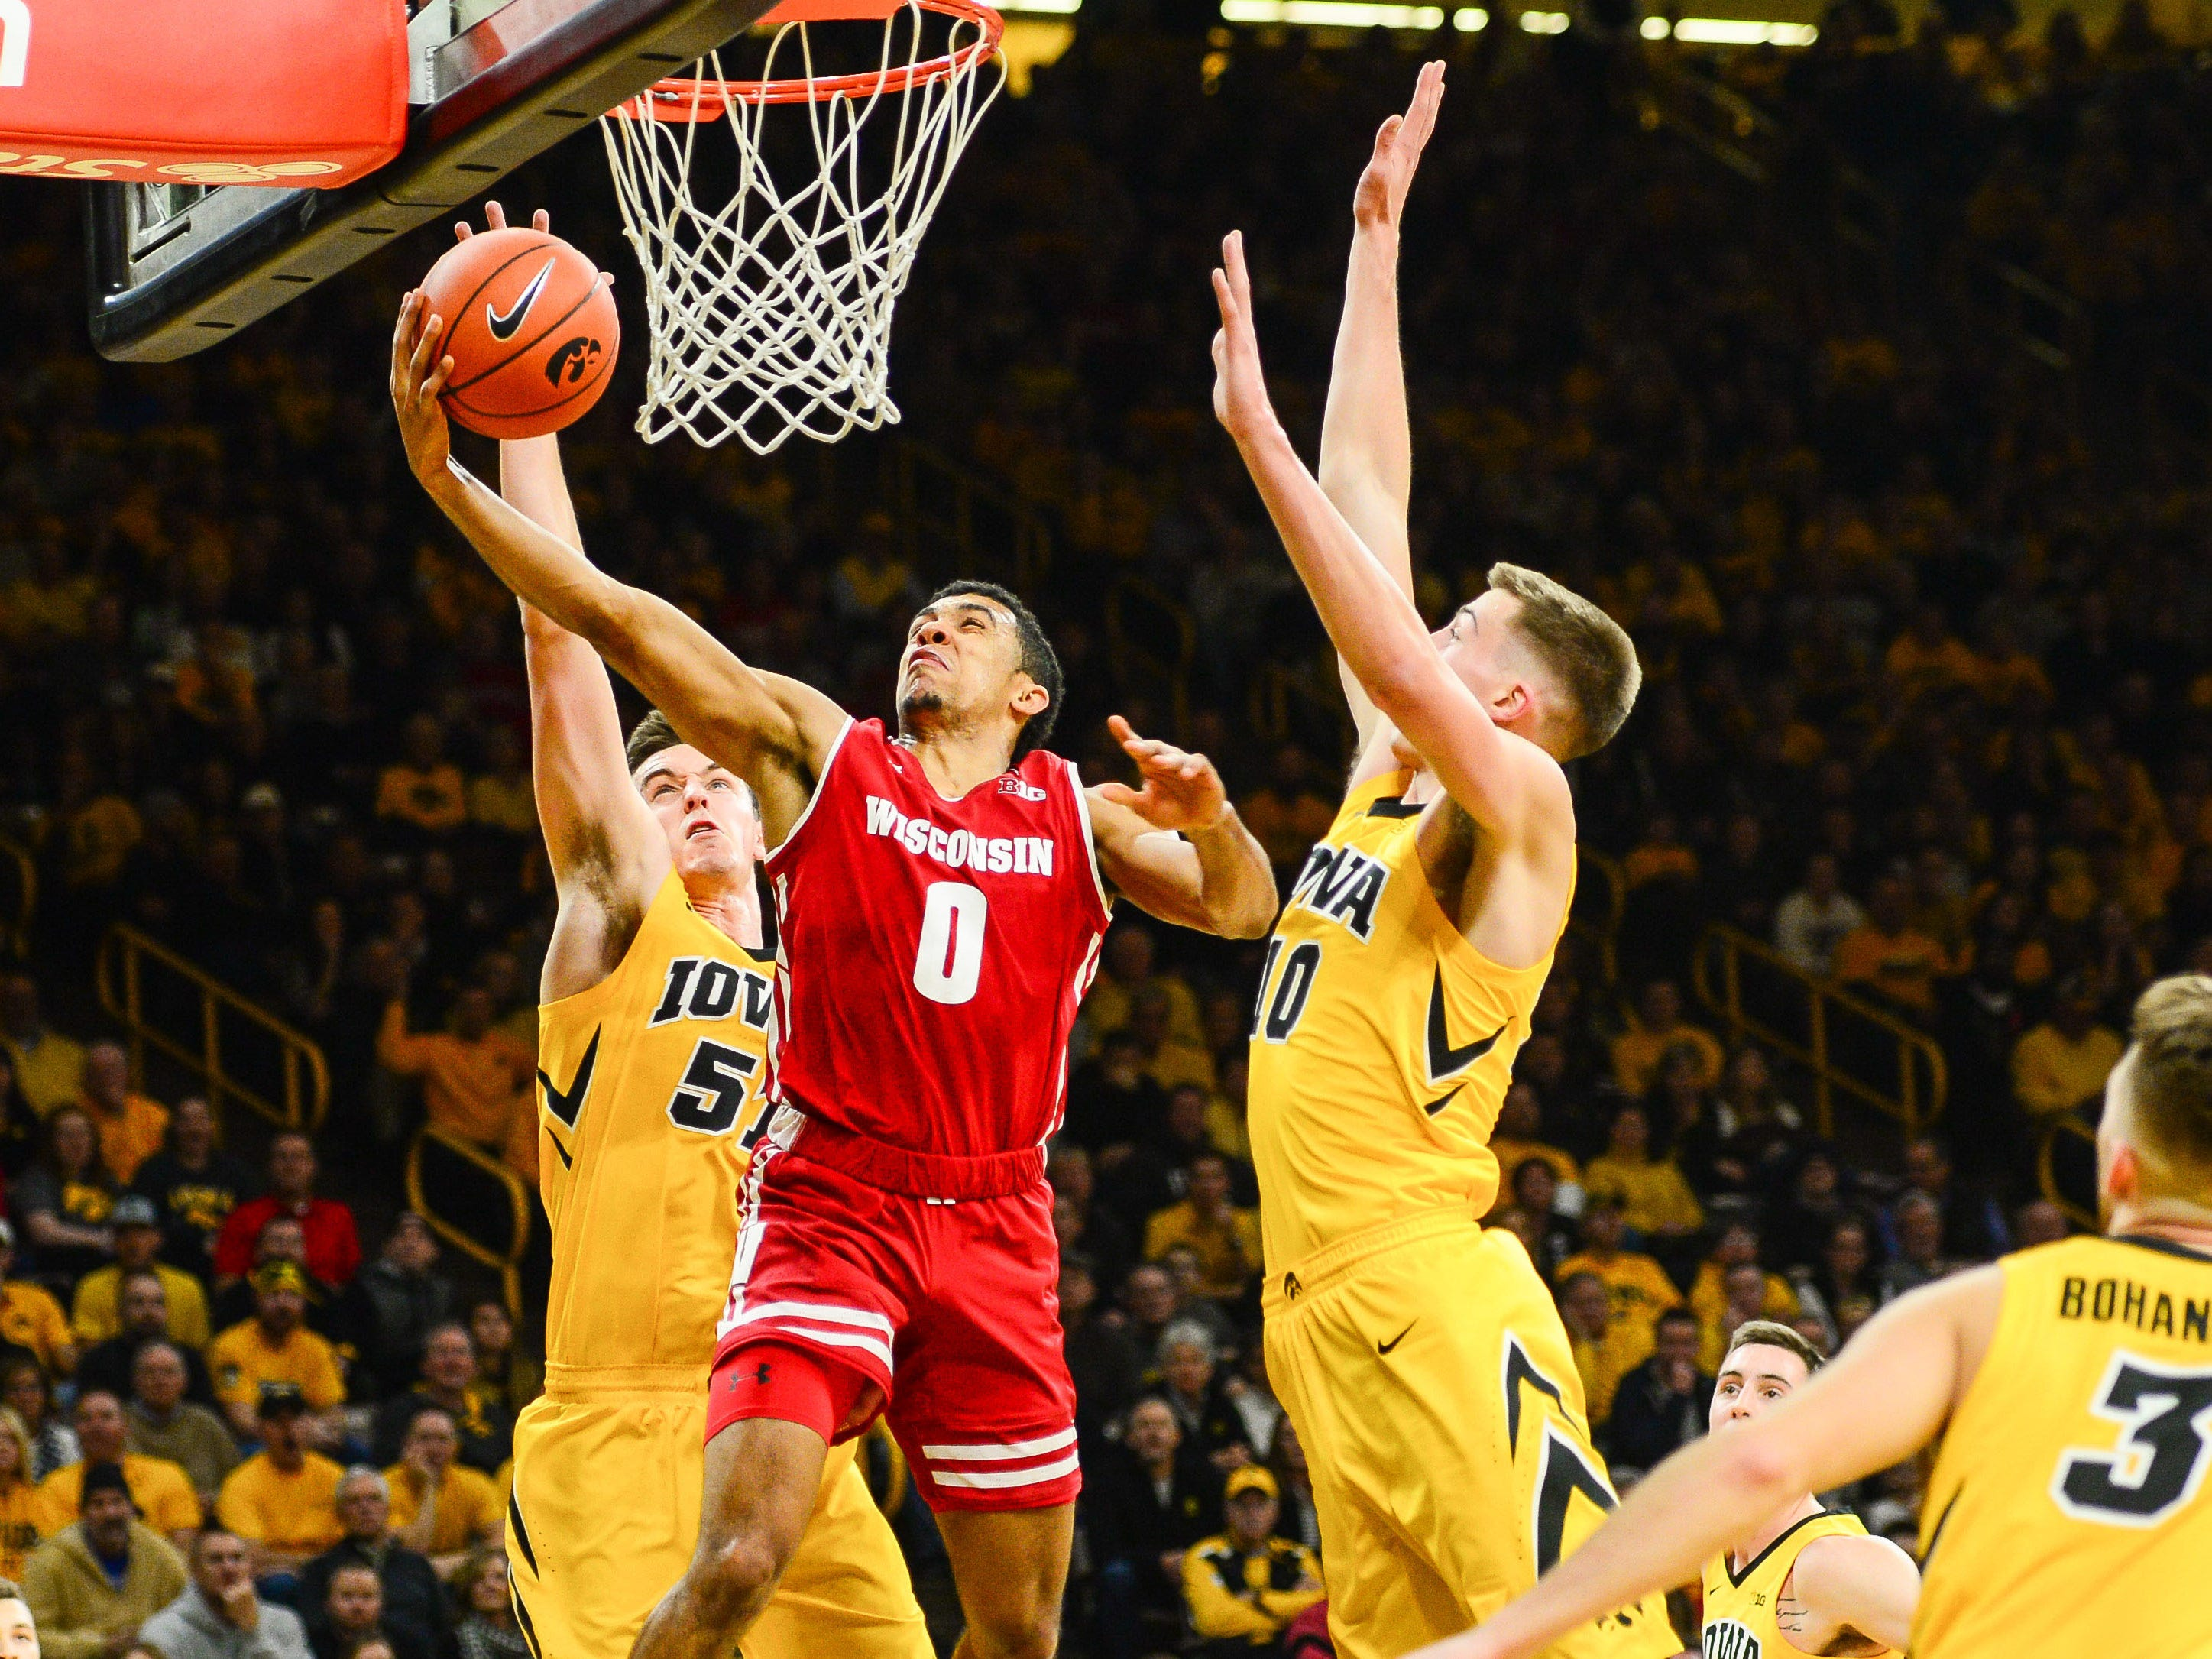 UW guard D'Mitrik Trice goes in for a layup between Iowa's Nicholas Baer (left) and Joe Wieskamp during the second half on Friday night.